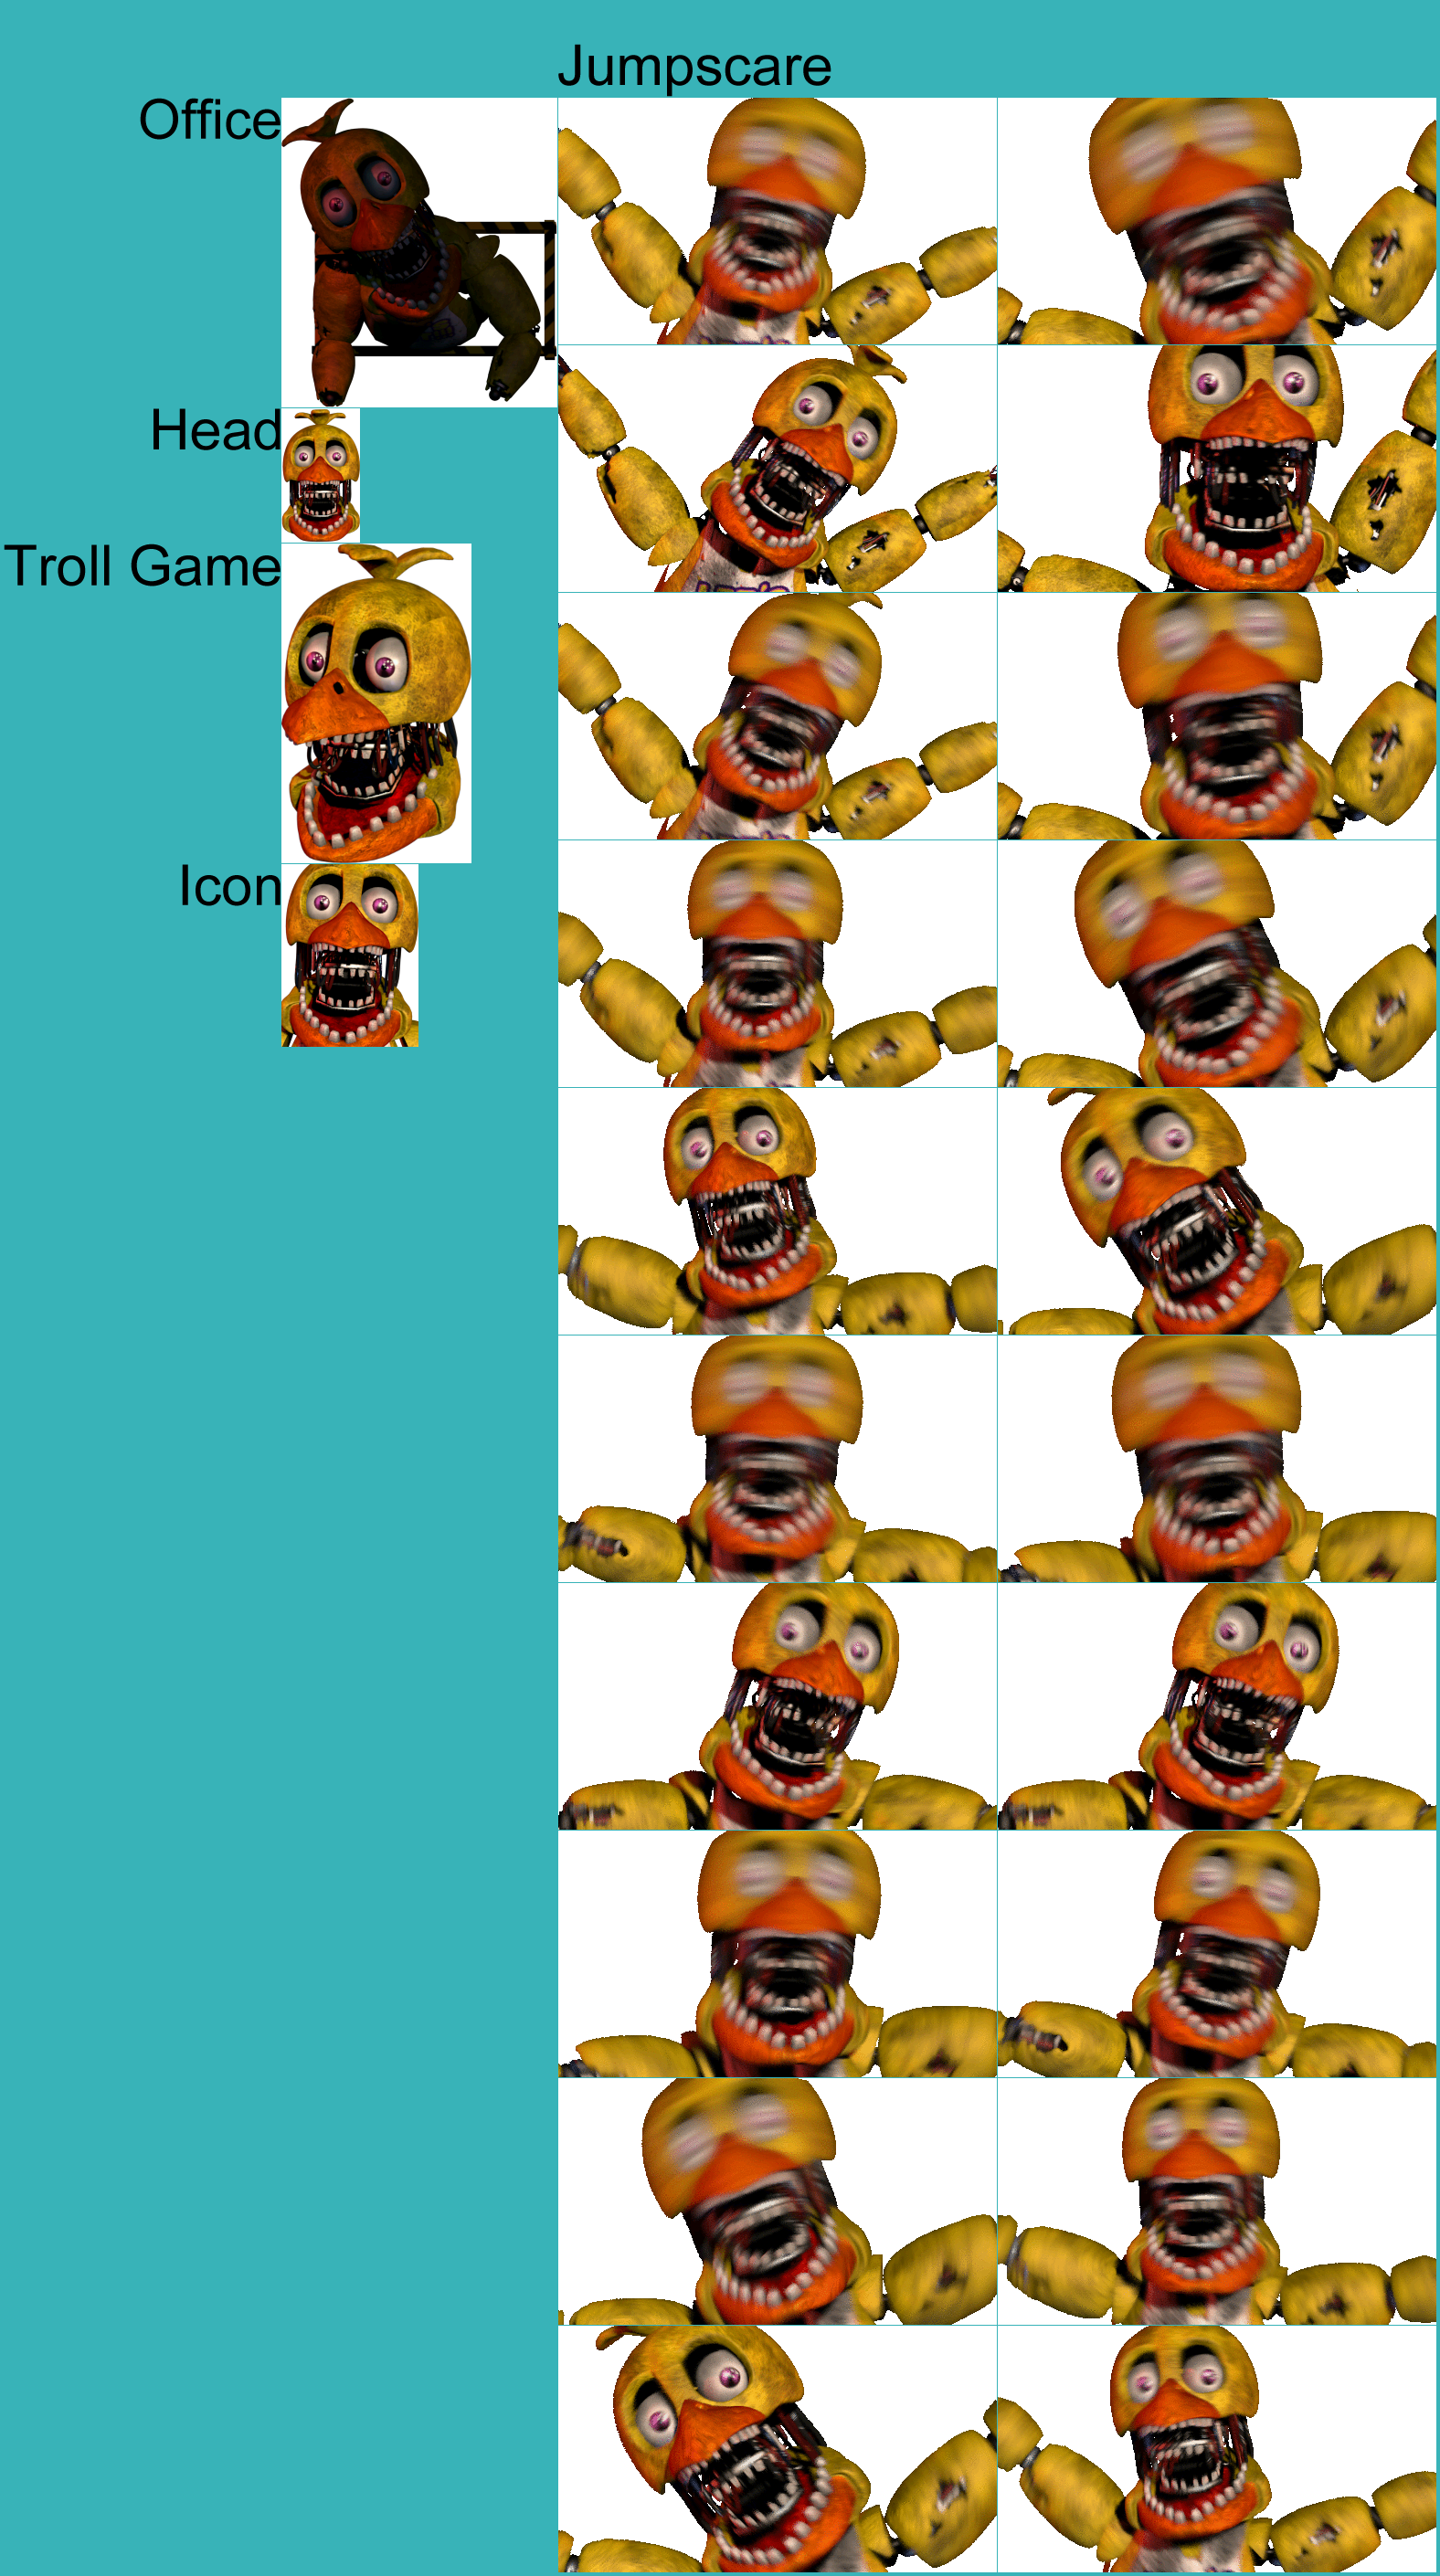 PC / Computer - Ultimate Custom Night - Withered Chica - The